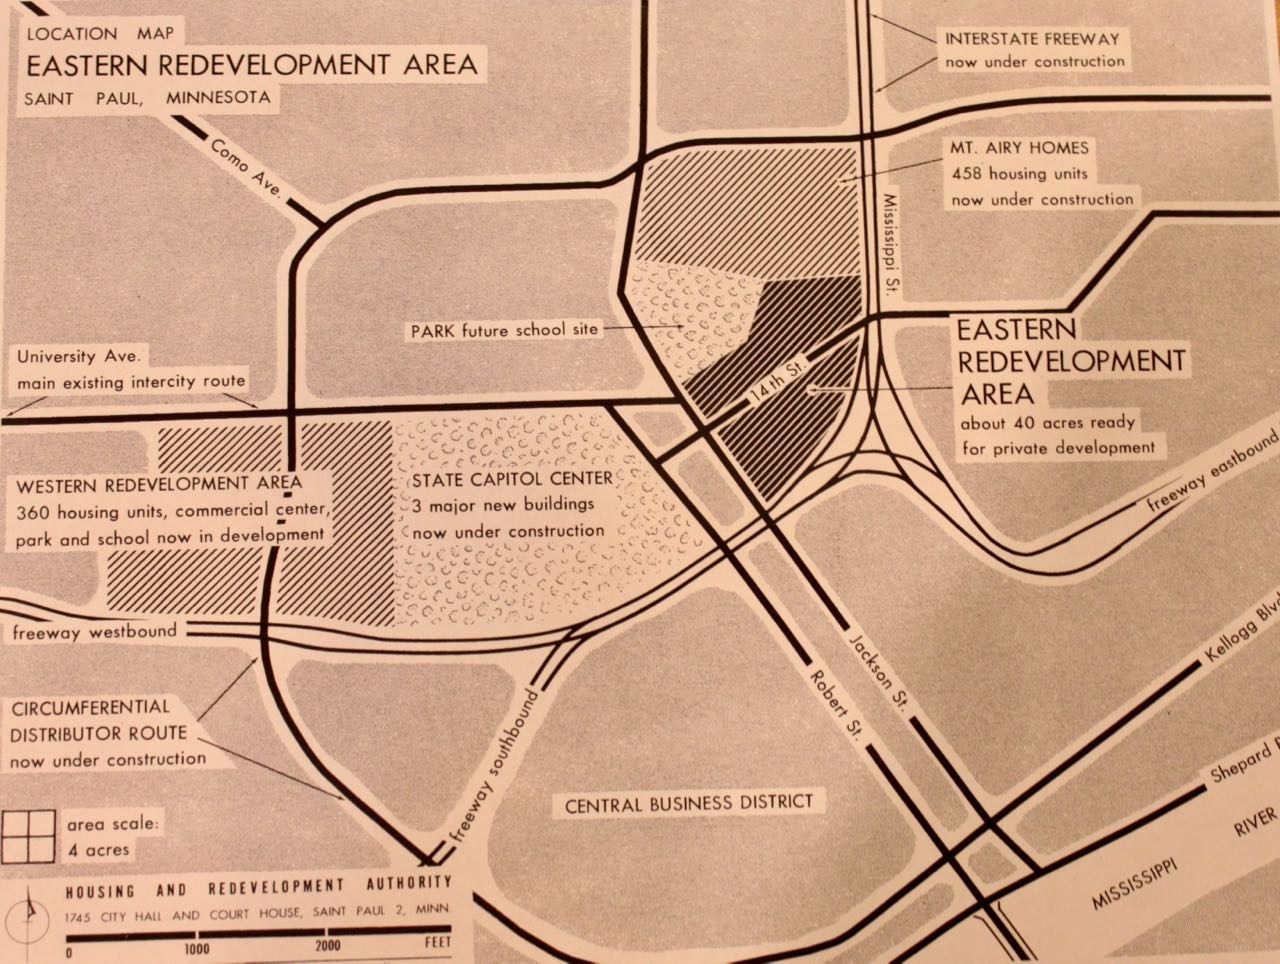 The Saint Paul Housing and Redevelopment Authority's 1957 location map of the Eastern and Western Redevelopment Areas.